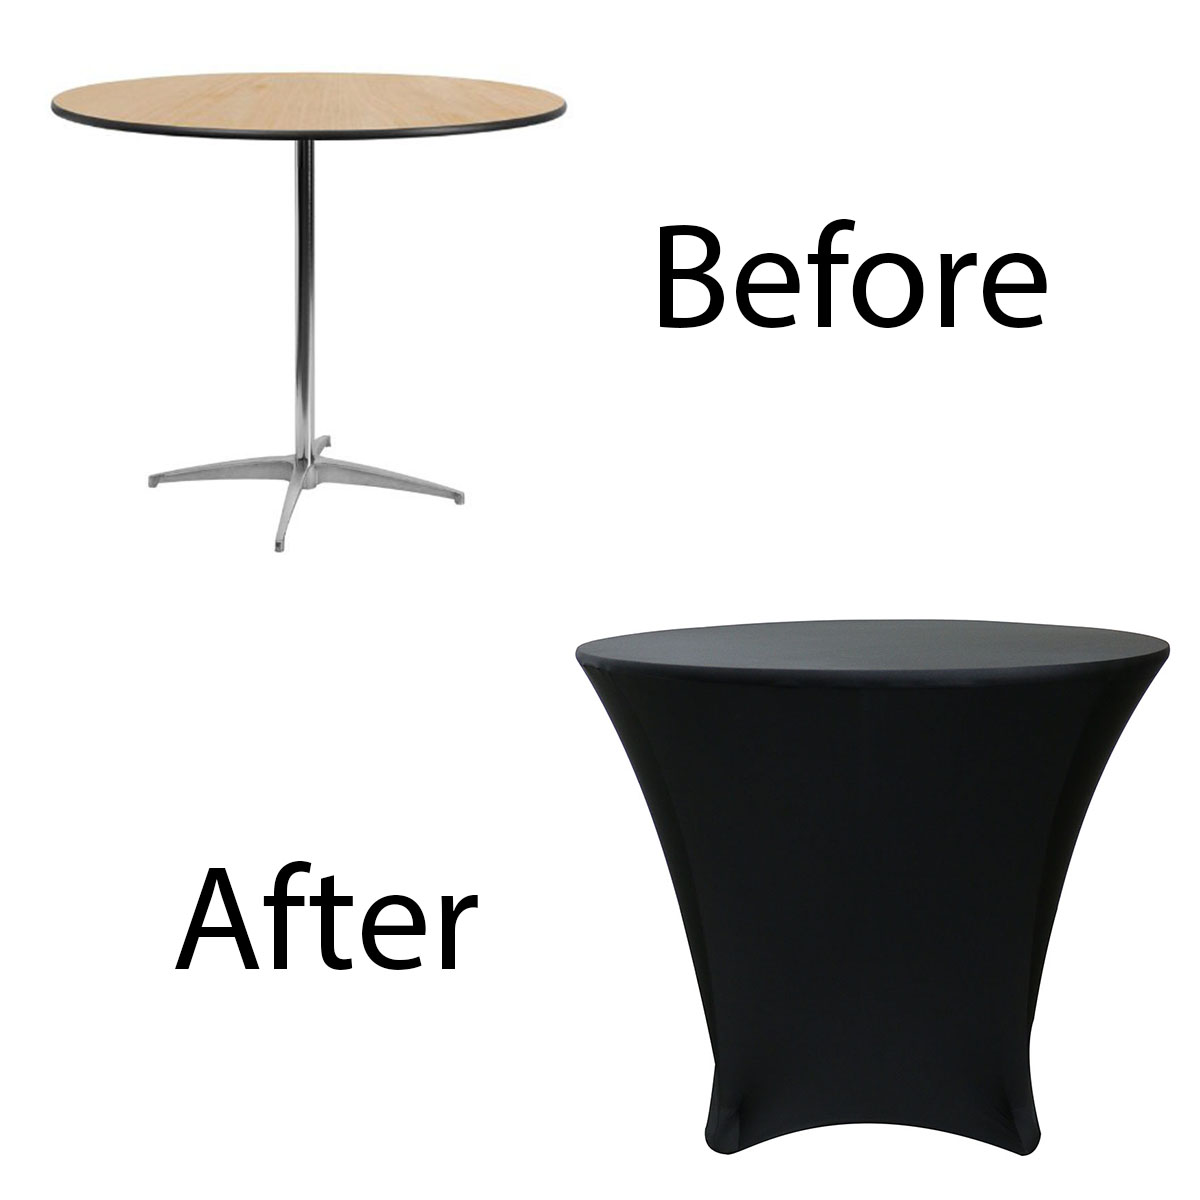 36-30-inch-lowboy-cocktail-spandex-table-covers-black-before-after.jpg